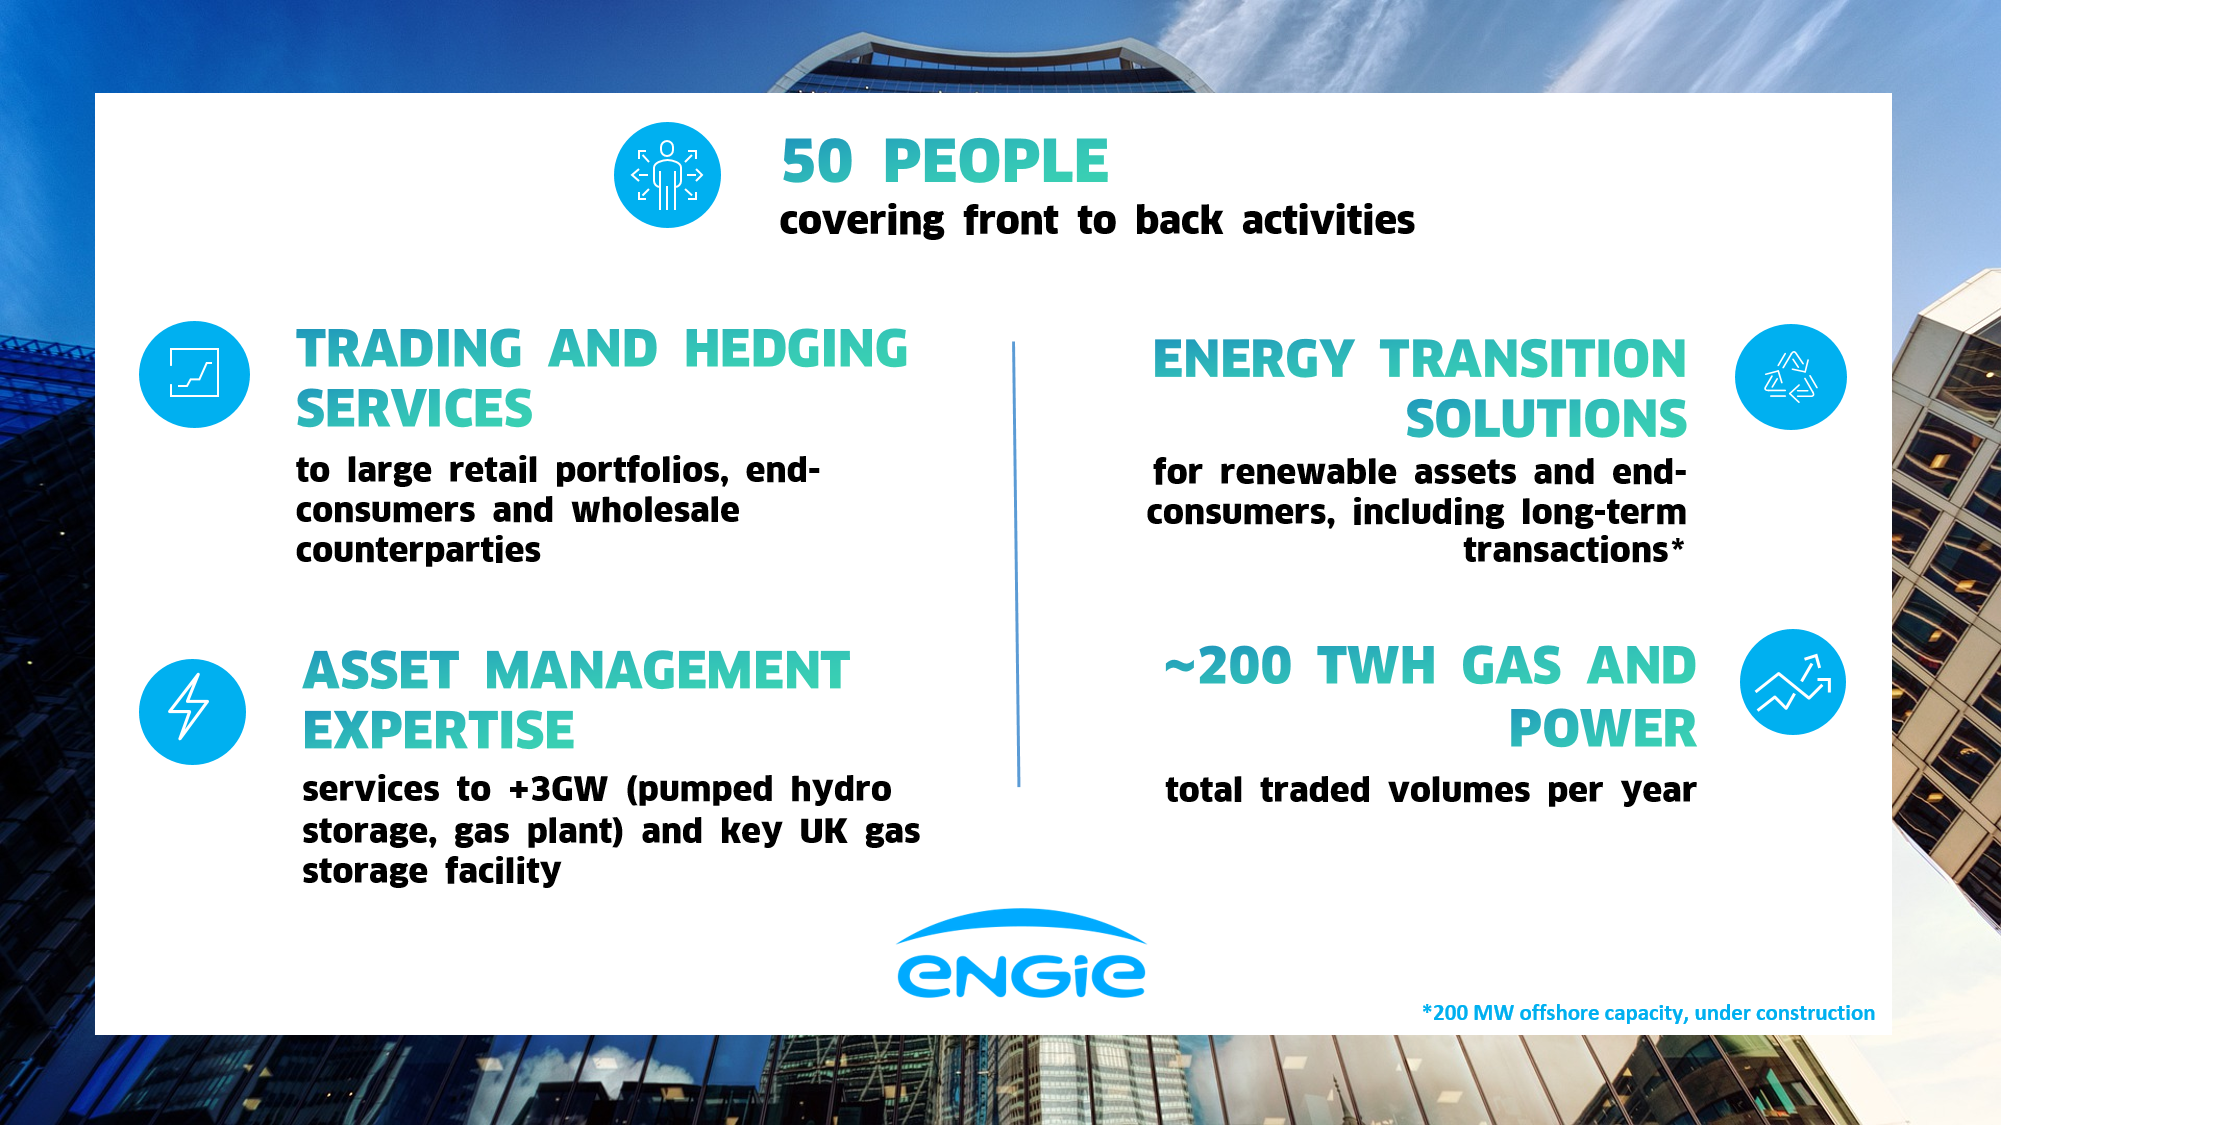 ENGIE Global Energy Management UK teams  works for trading and hedging services, asset manegement, energy transition, gas & power